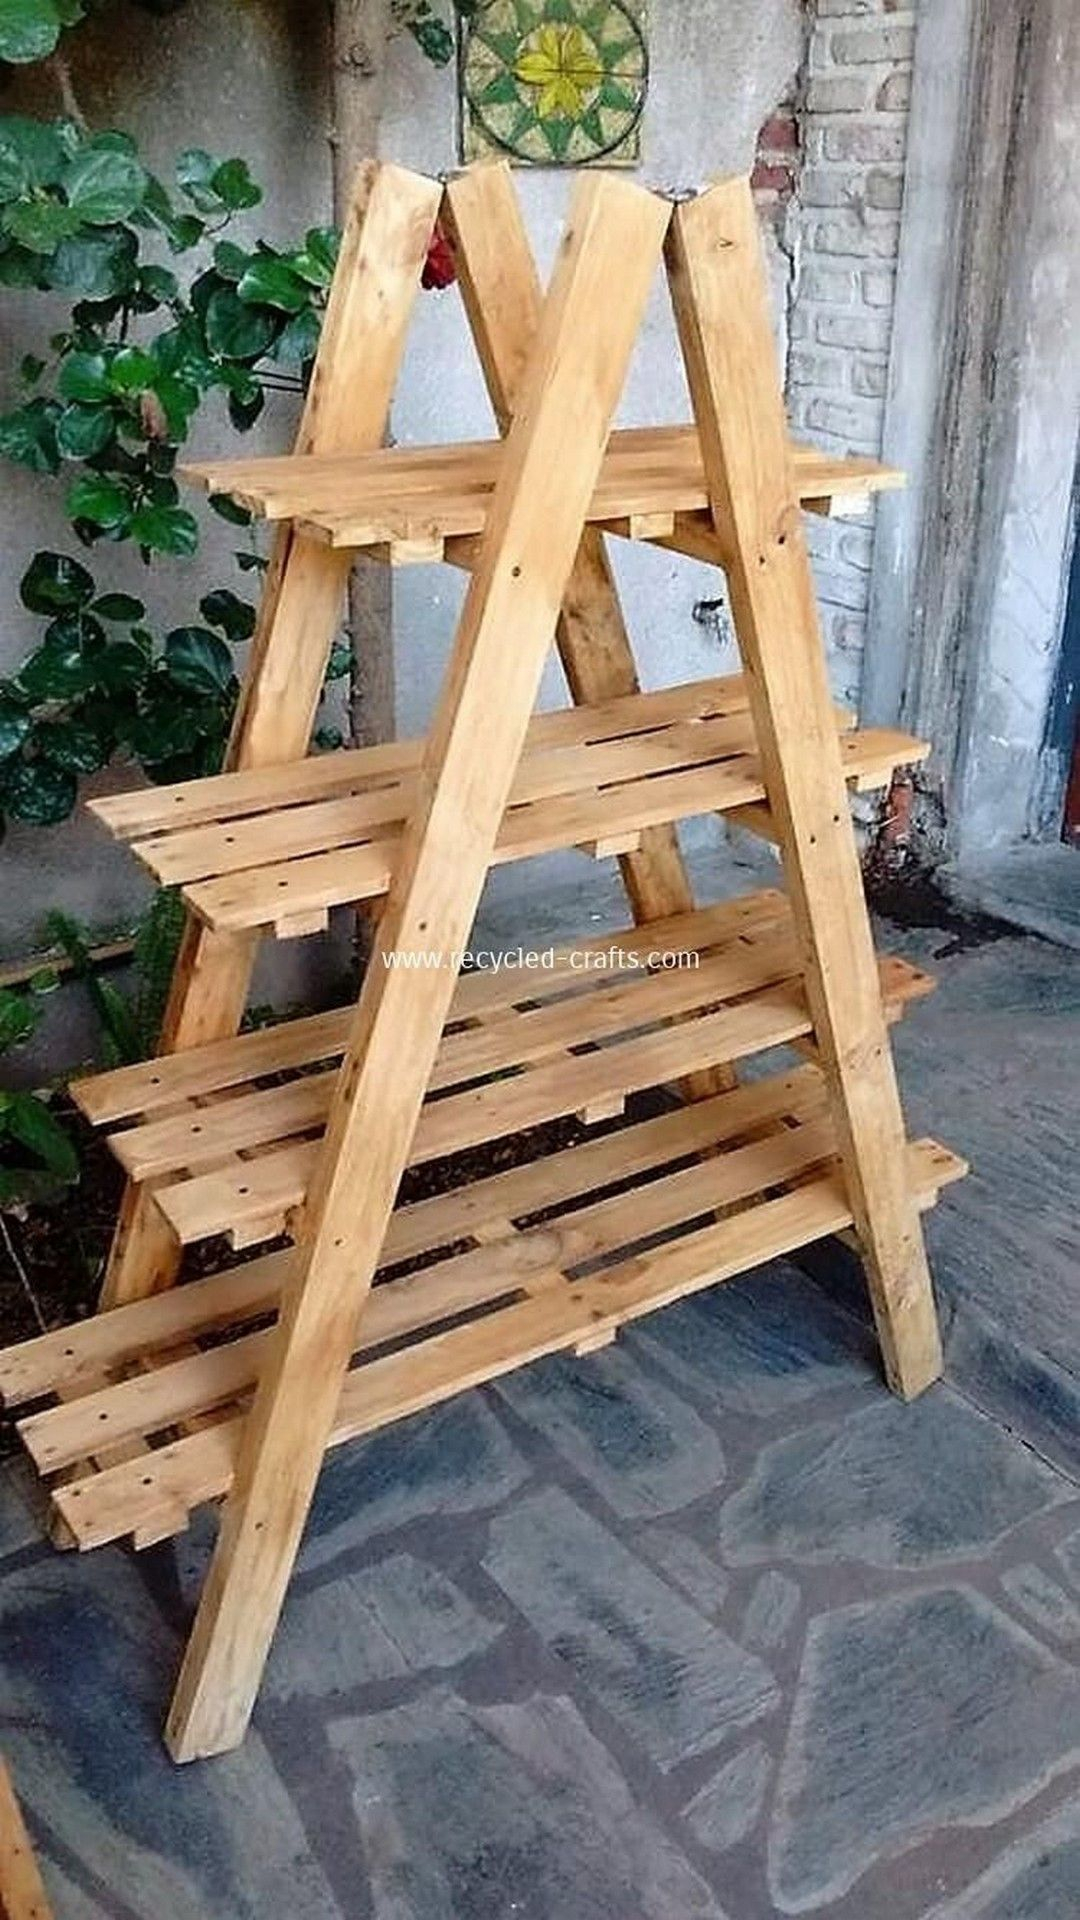 Unordinary Wooden Pallet Furniture Ideas That Is Easy For You To Make04